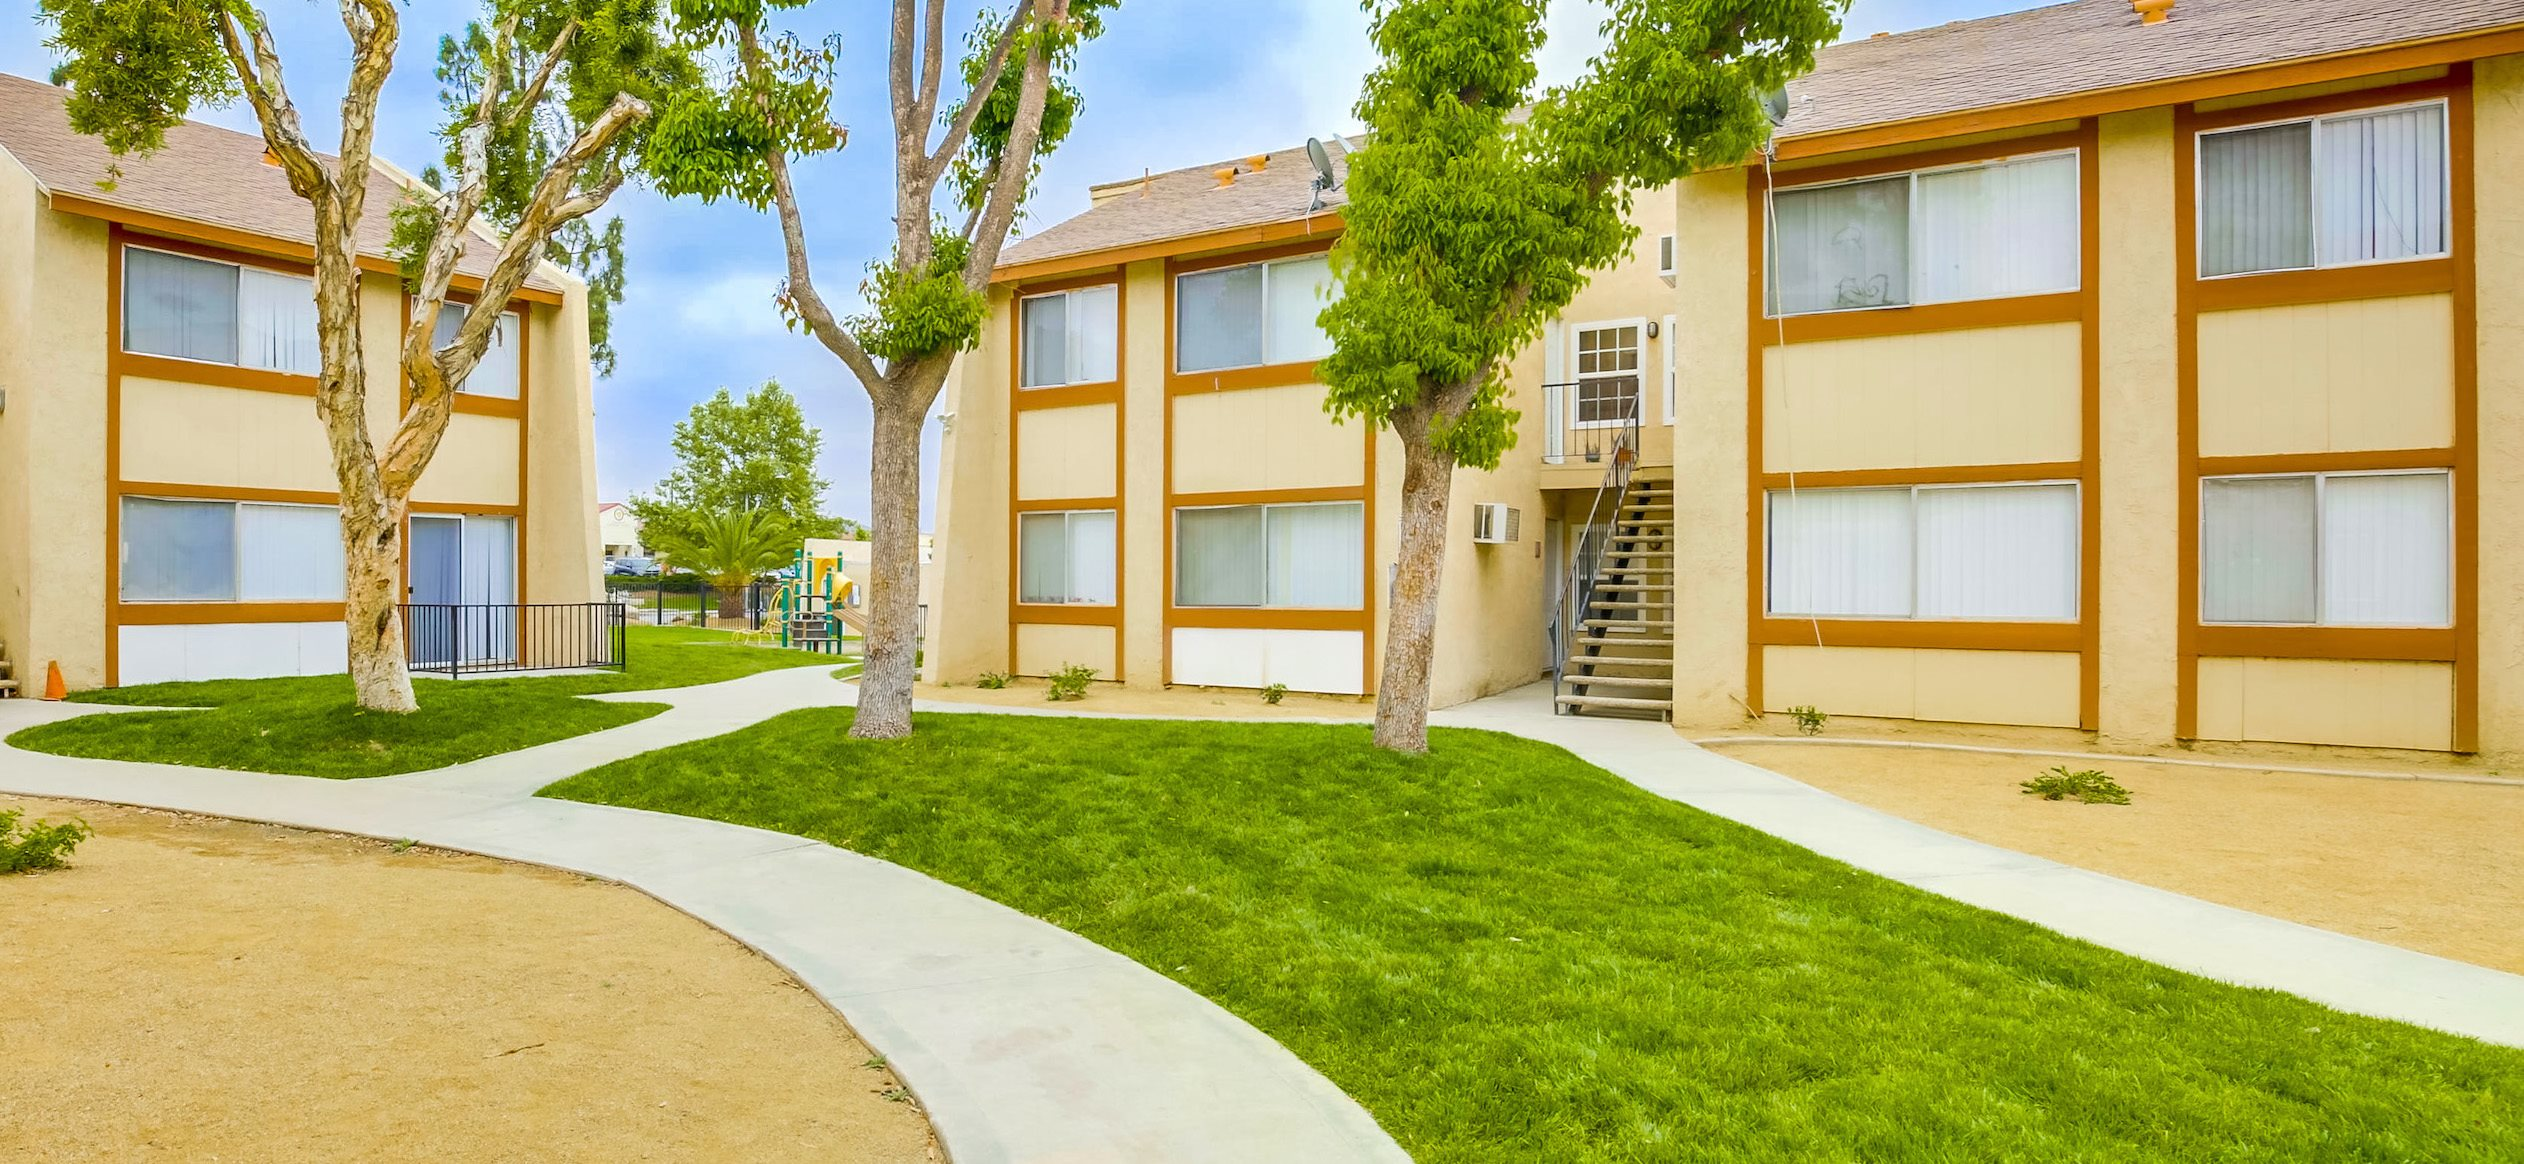 Moreno Valley homepagegallery 1